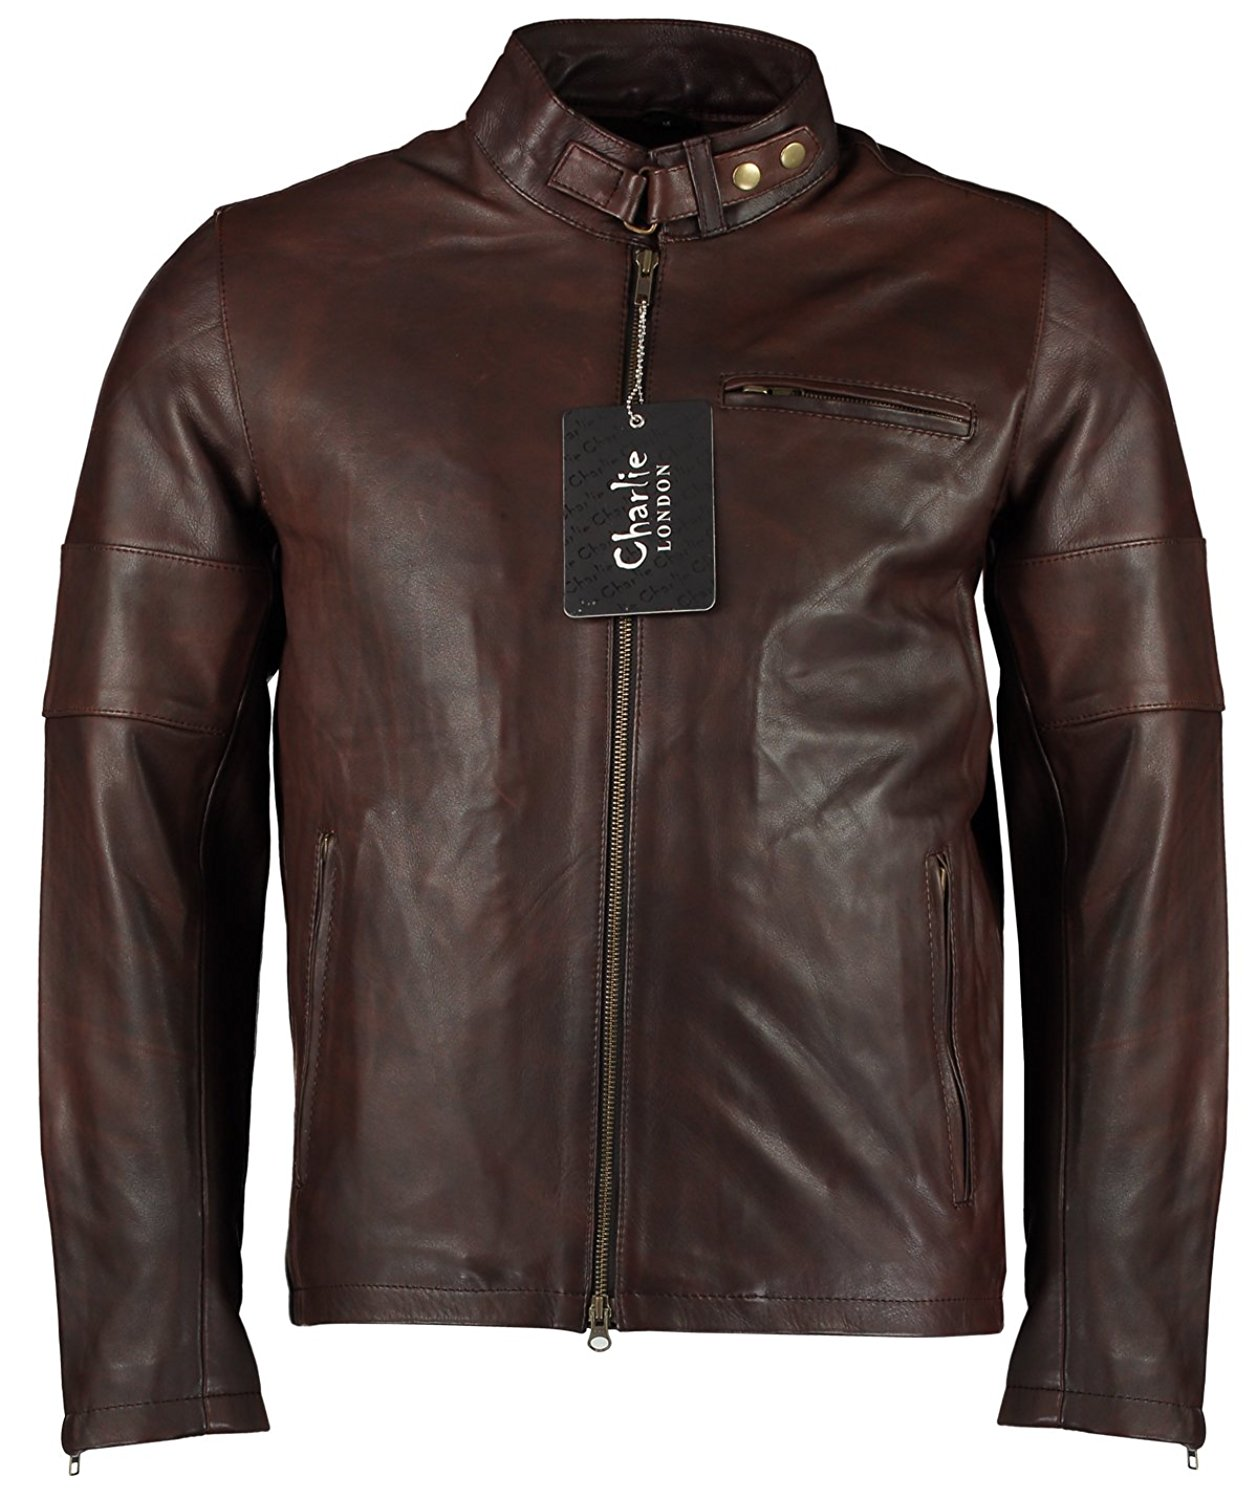 Find a complete range of men's coats and jackets for sale in London. Search Gumtree's marketplace for outdoor wear, stylish coats and warm winter jackets.